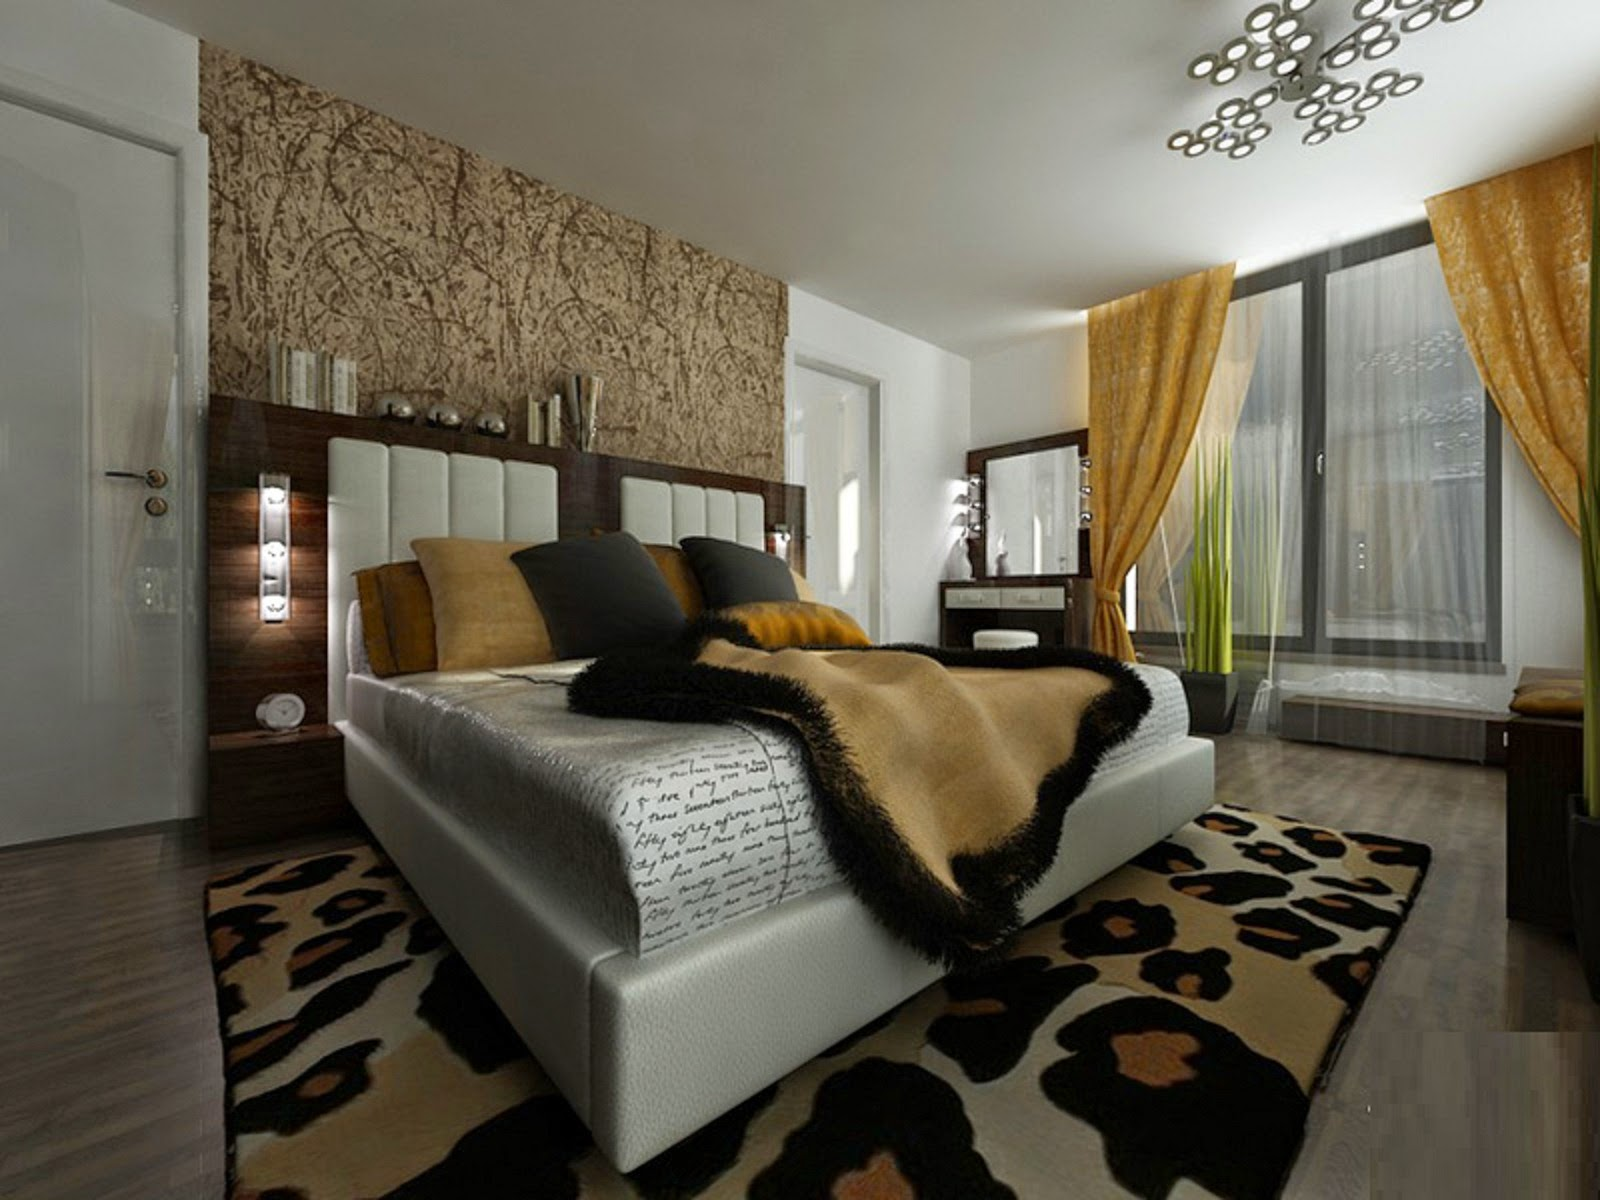 Dynamic views most beautiful bedroom interior designs for Pictures of beautiful bedroom designs